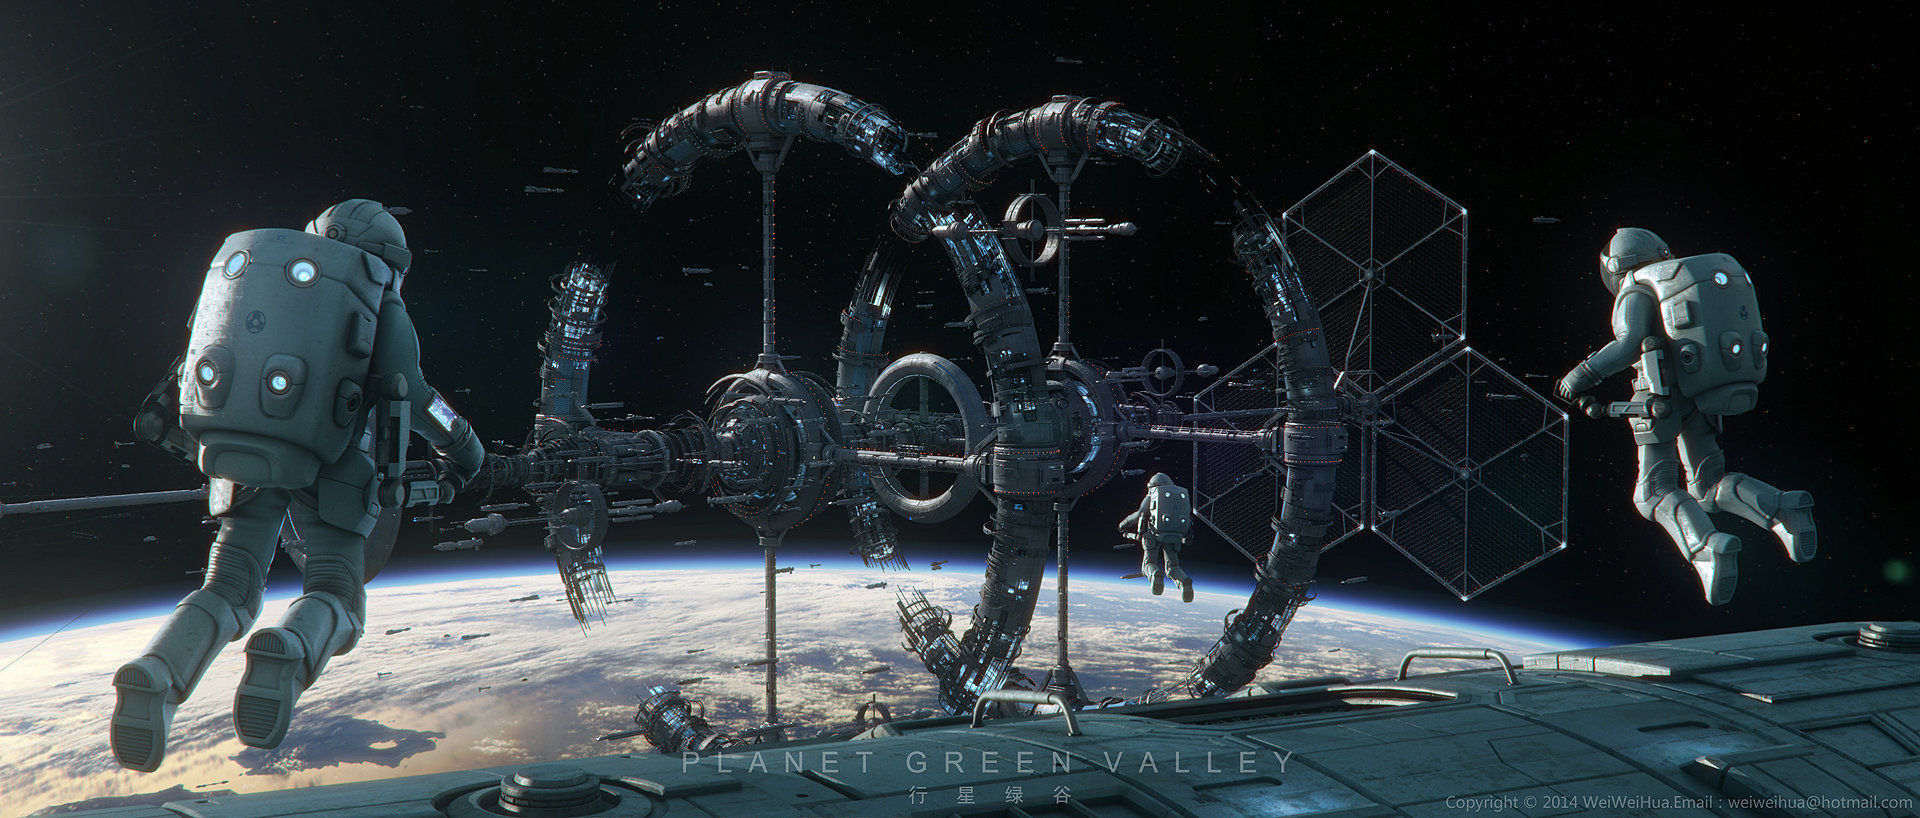 Sci-Fi 3D Illustration and Artworks by Wei Weihua